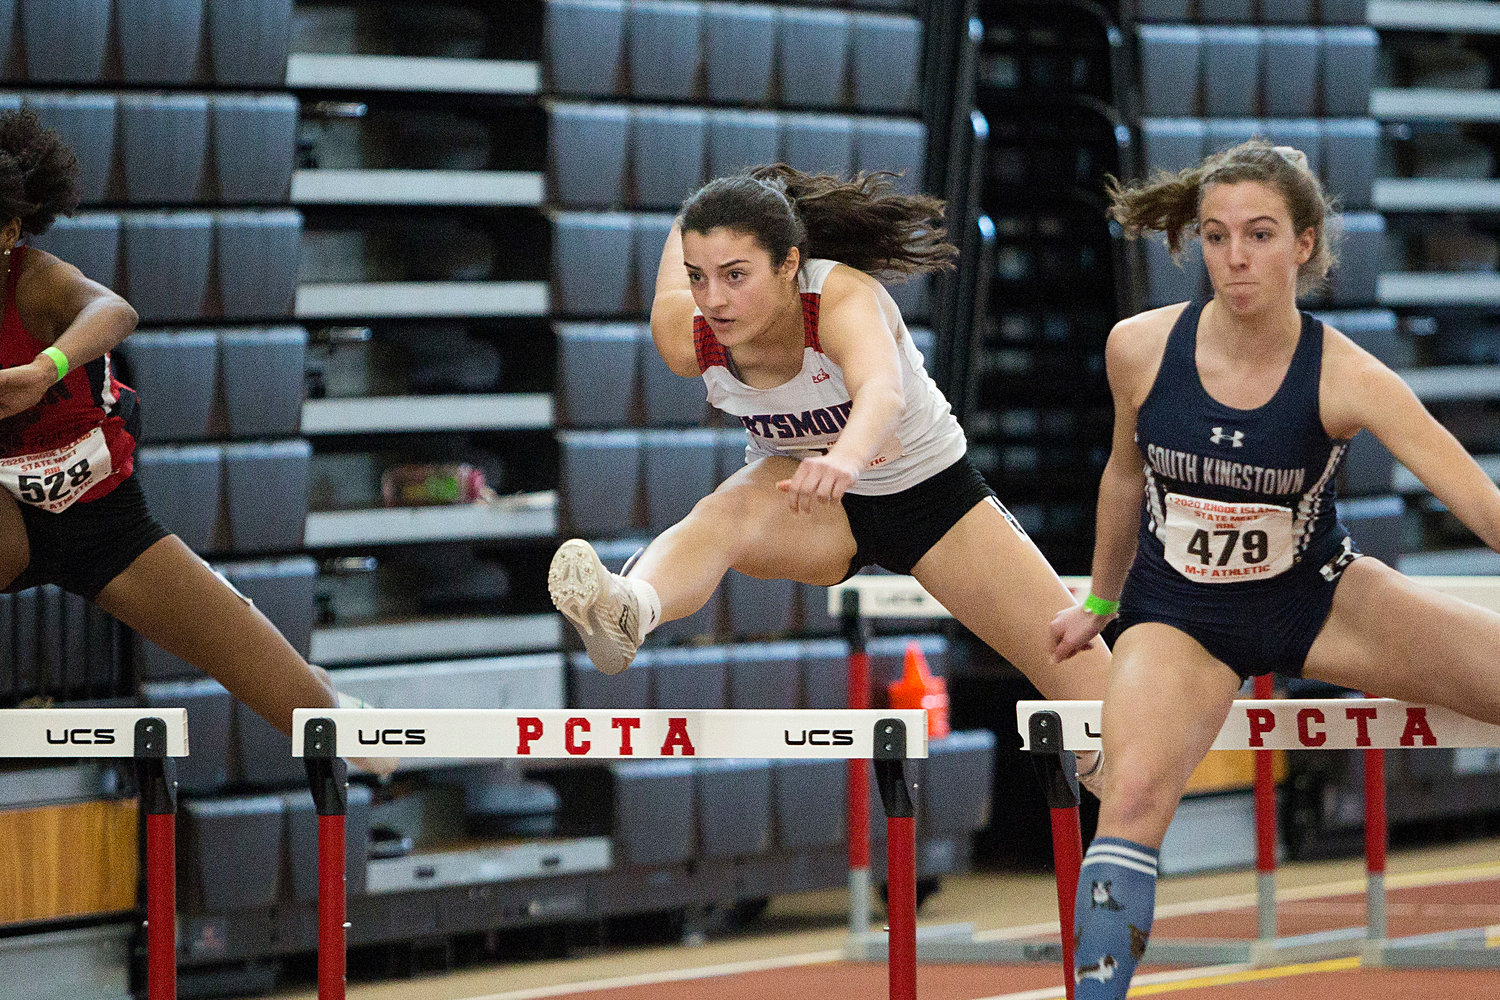 Meghan Lehane came in fifth in the 55-meter hurdles with a time of 9.08 seconds, which broke her own school record.